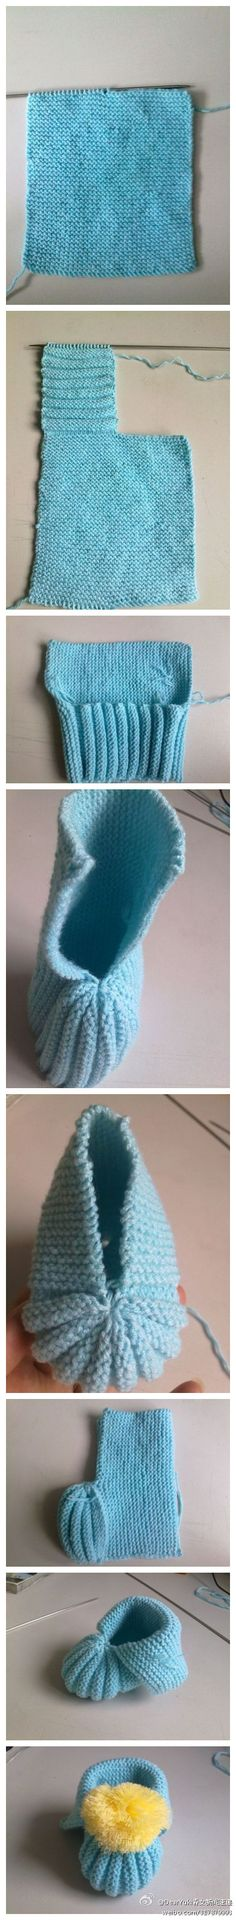 Easy Baby Bootees - knitting